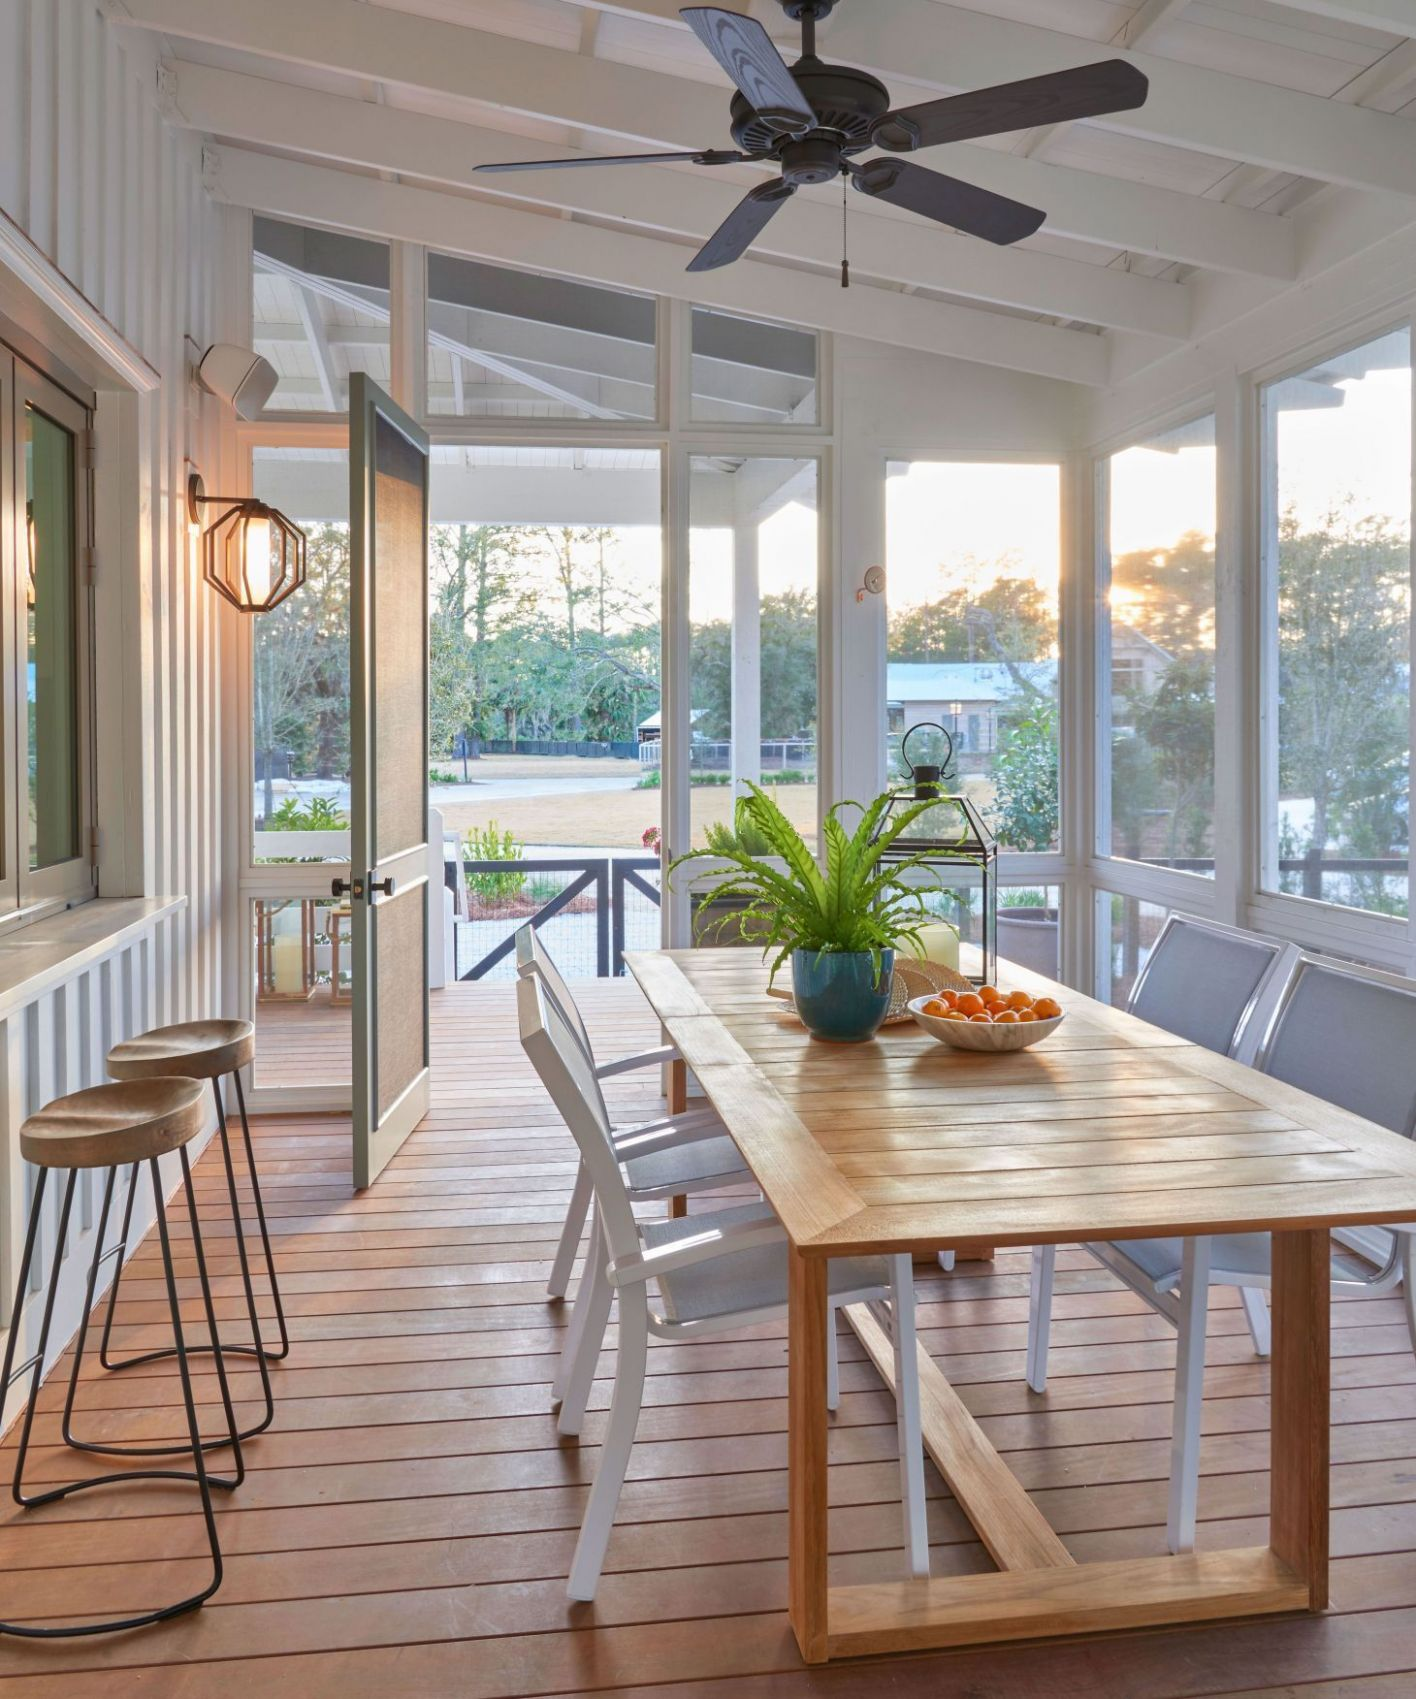 12 Charming Sun Room Design Ideas For Relaxing Room (With images ..